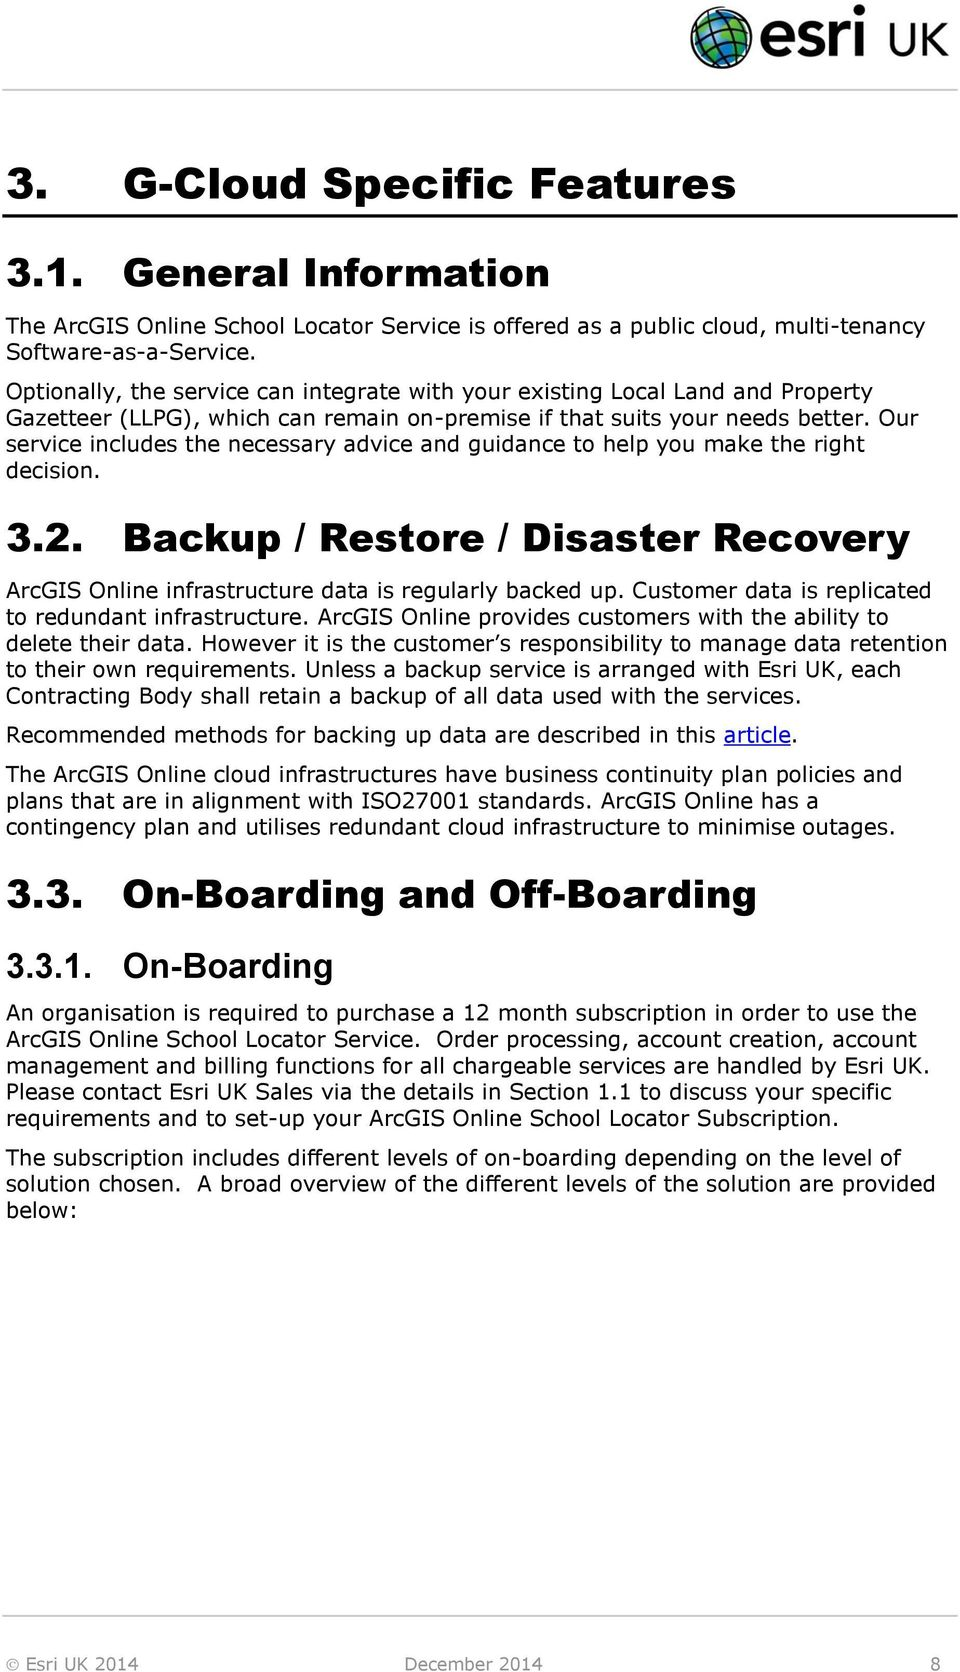 Our service includes the necessary advice and guidance to help you make the right decision. 3.2. Backup / Restore / Disaster Recovery ArcGIS Online infrastructure data is regularly backed up.